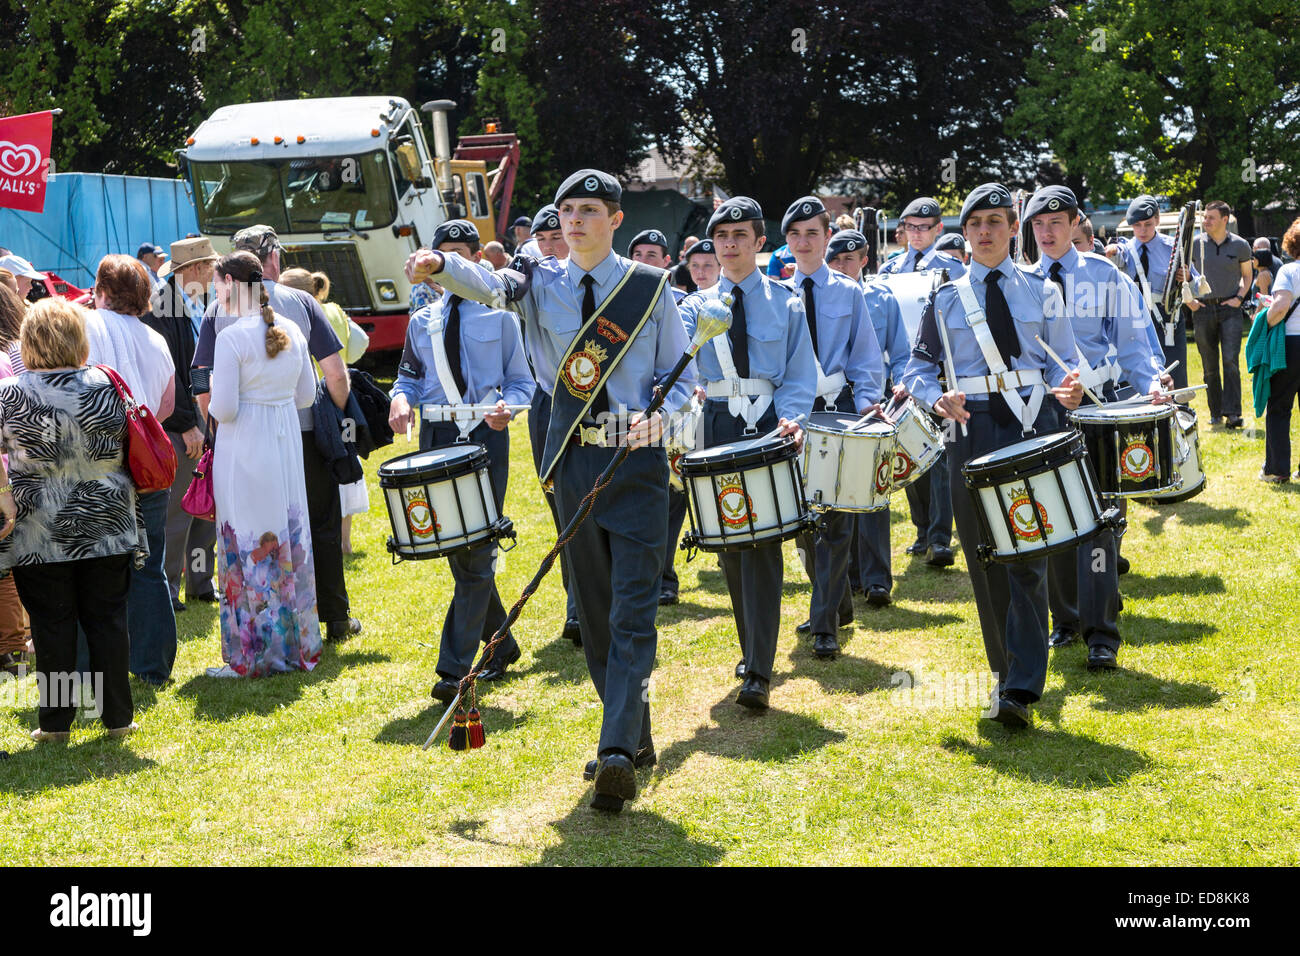 ATC Air Training Corps cadets marching band at the Steam Rally, Abergavenny, Wales, UK - Stock Image